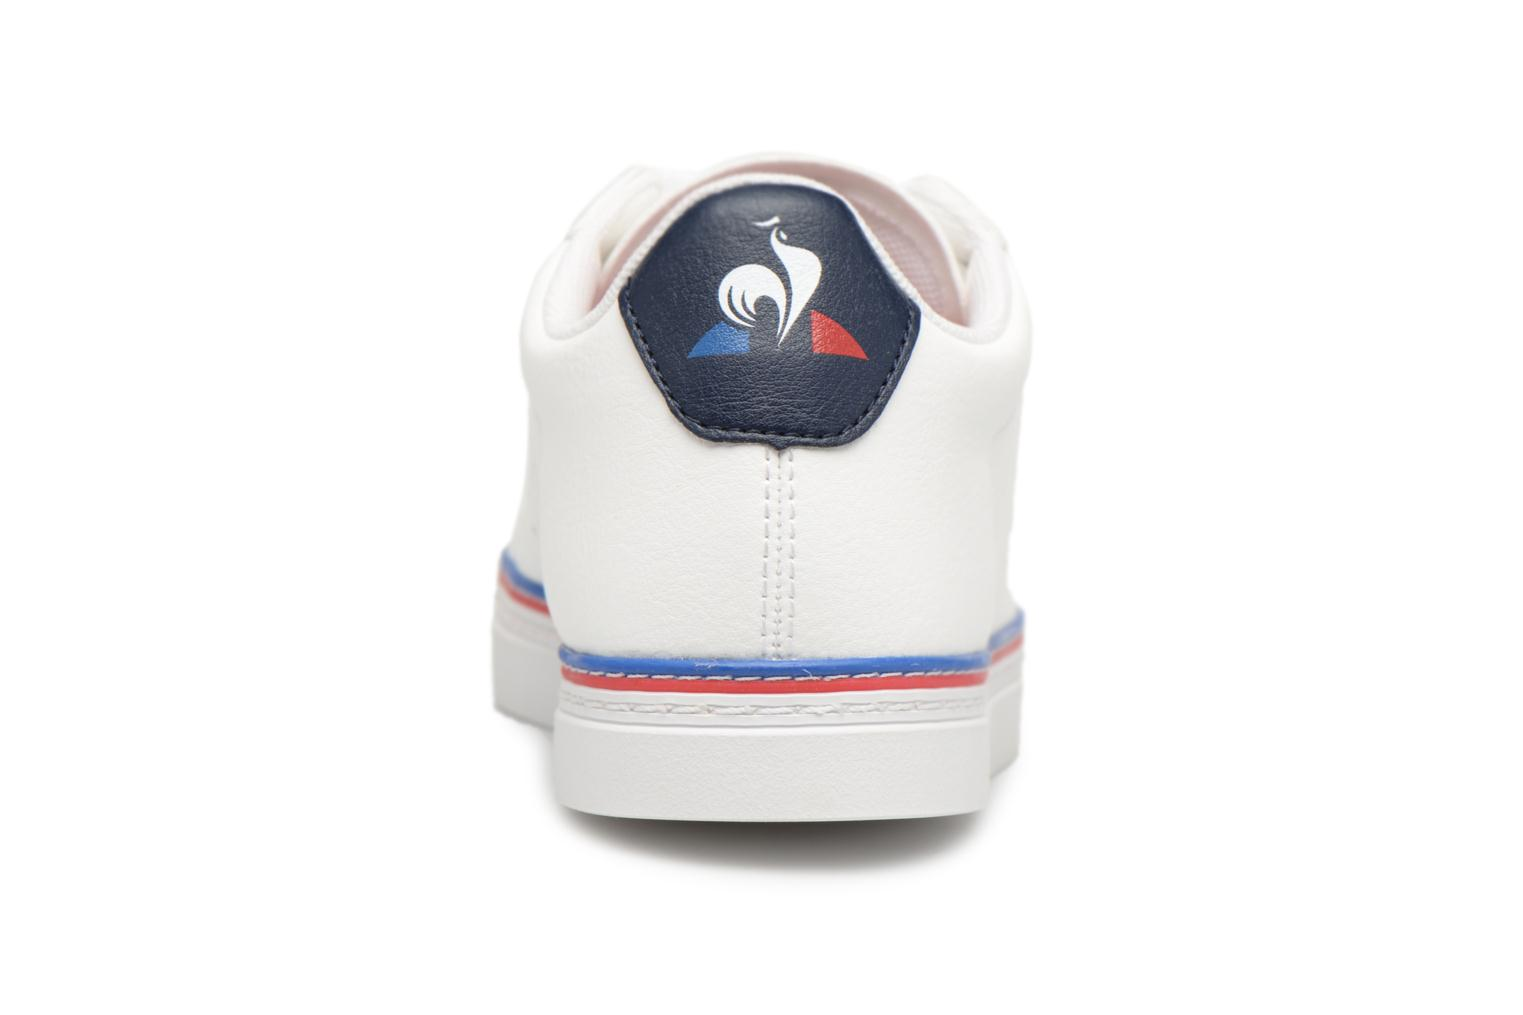 Le Courtace White Sport Coq Sportif Blue GS Optical Dress OqnrOwEpx